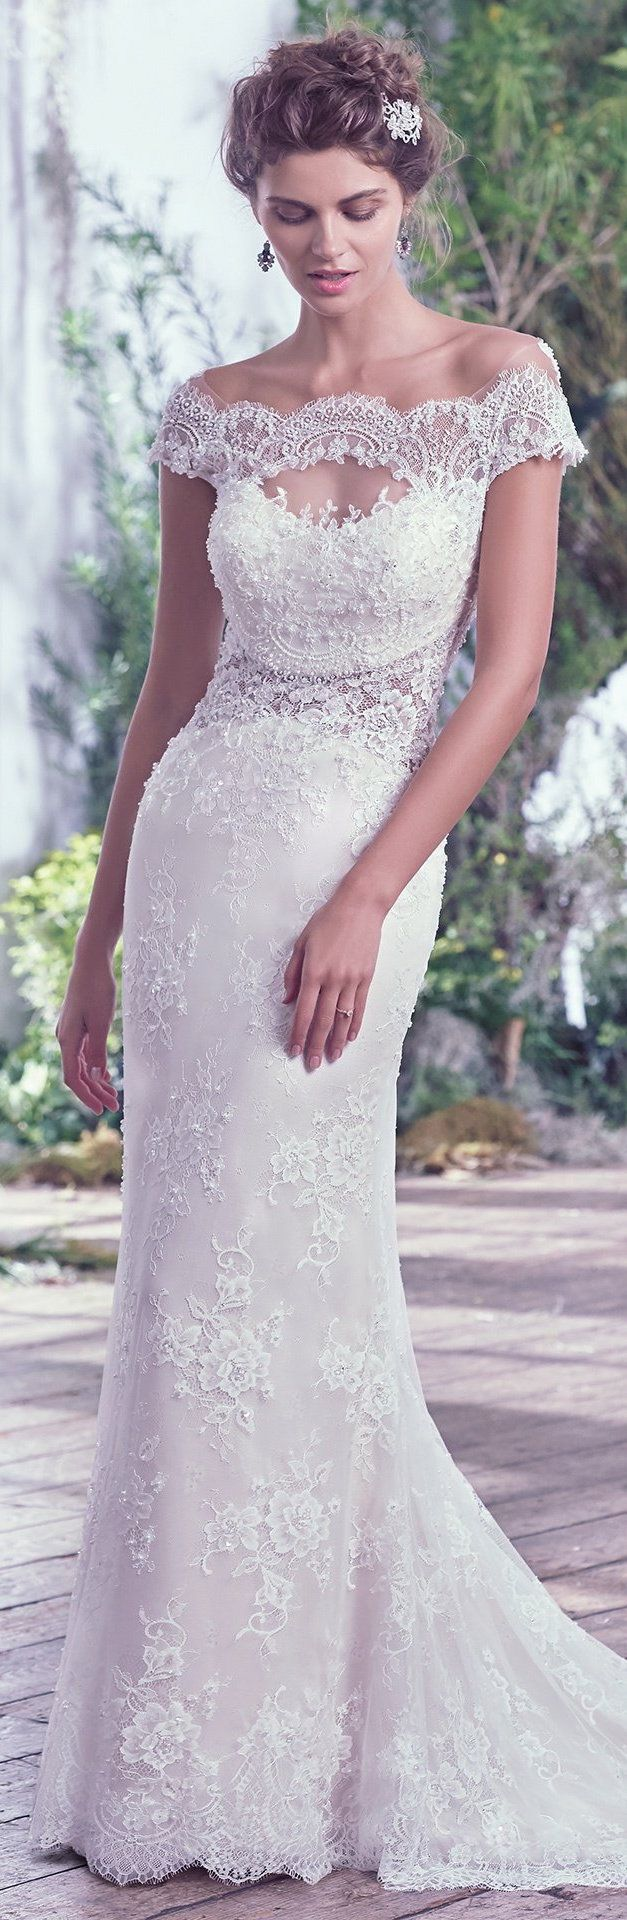 Wedding Dress by Maggie Sottero 2016 Fall/Winter Collection - Sipriana | #maggiesottero #maggiebride